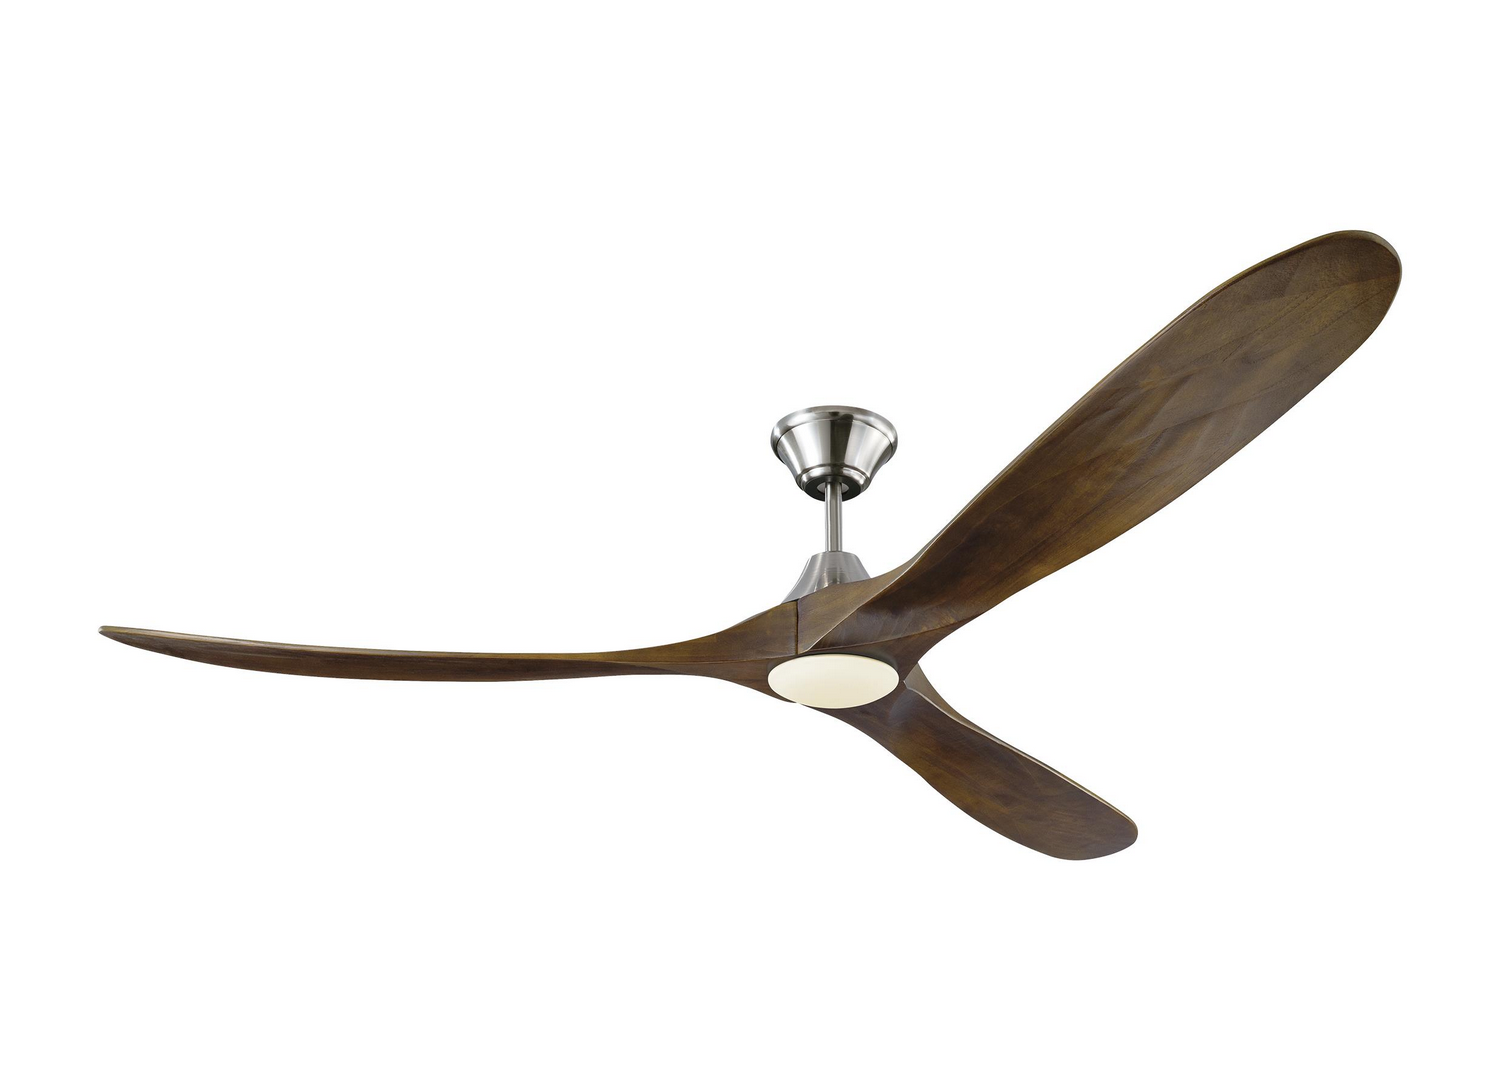 70 inchCeiling Fan from the Maverick Max LED collection by Monte Carlo 3MAVR70BSD